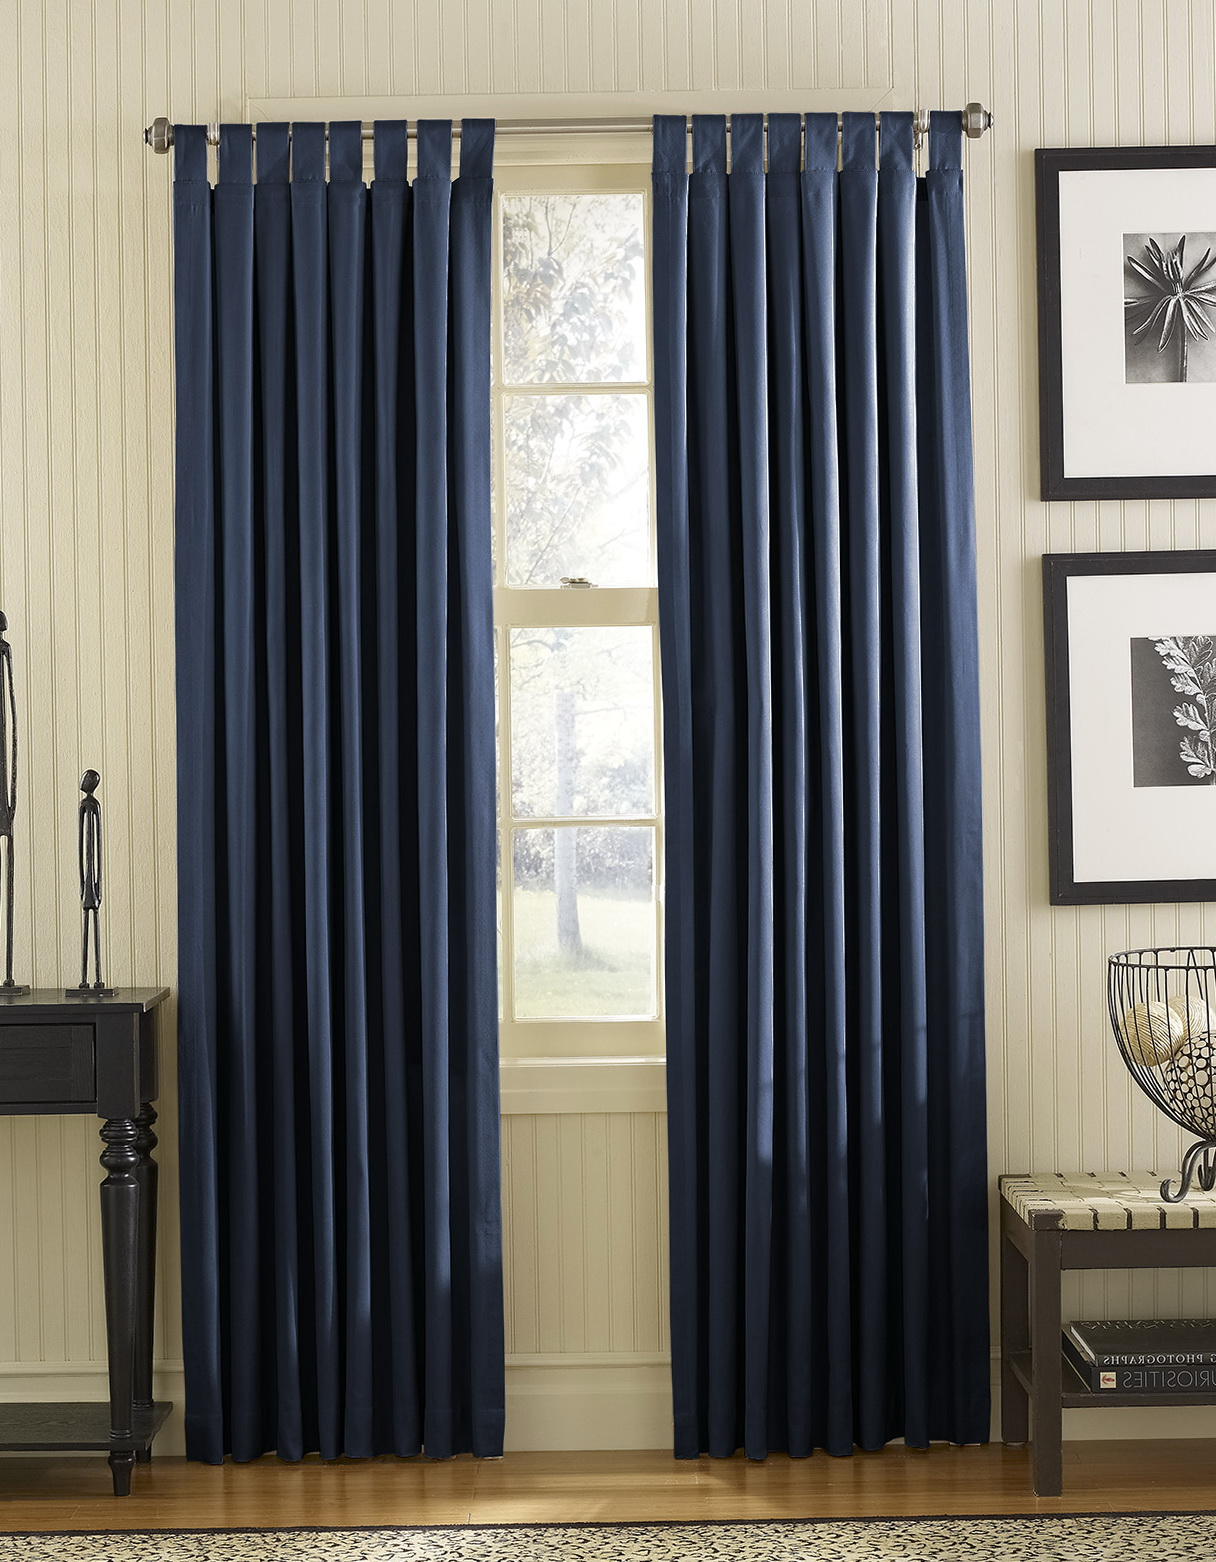 Small Window Long Curtains Home Design Ideas